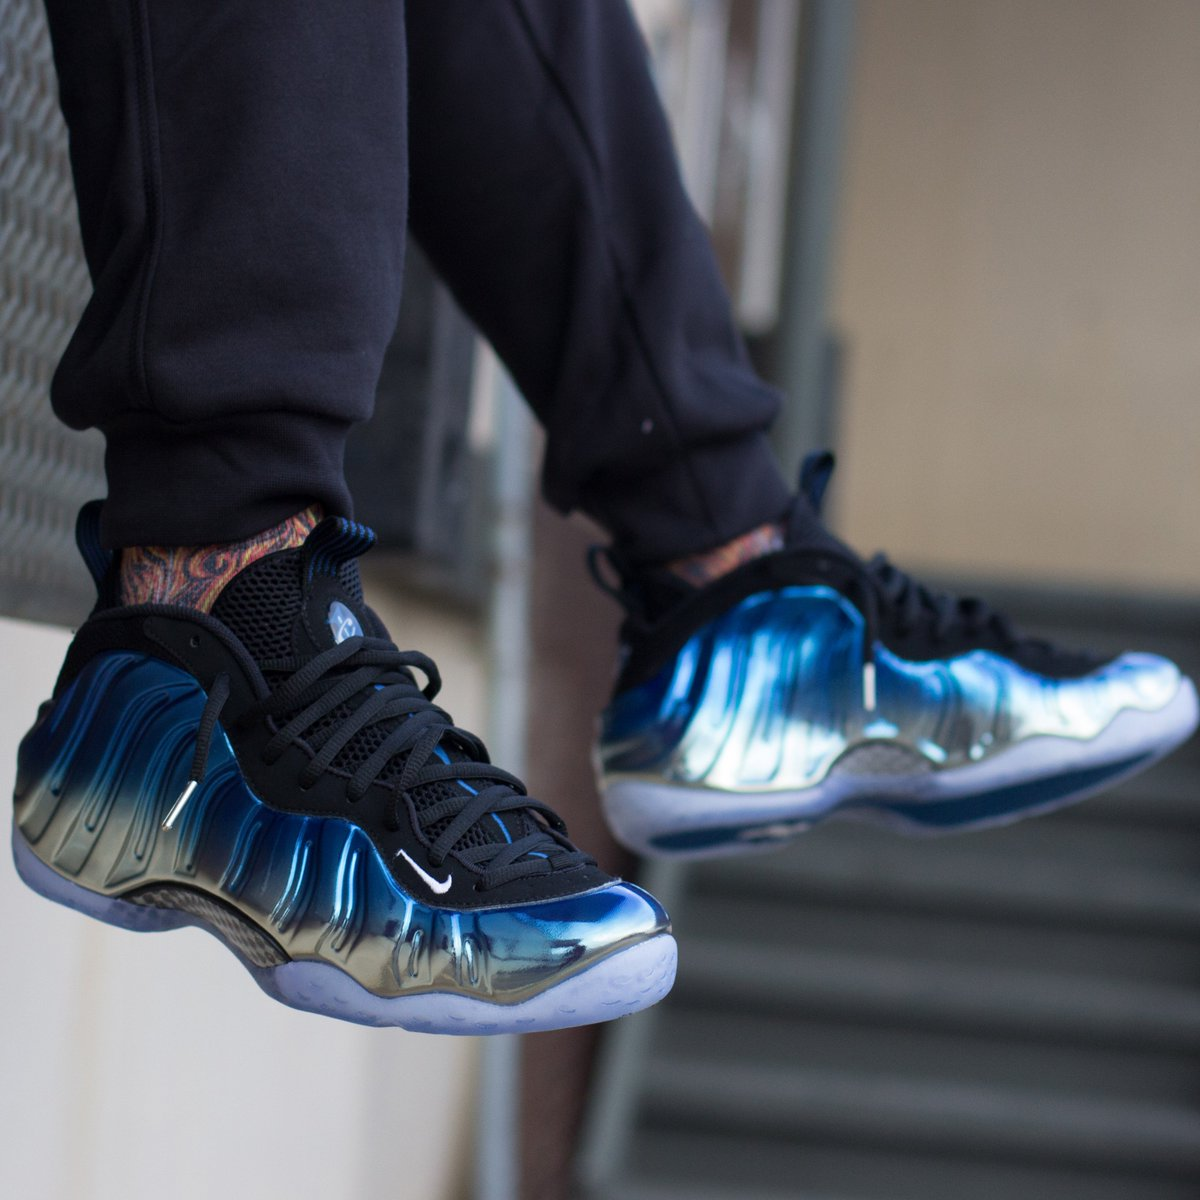 best website 1cec1 3a8fa ... purchase city gear on twitter the nike air foamposite one premium blue  mirror is sold out